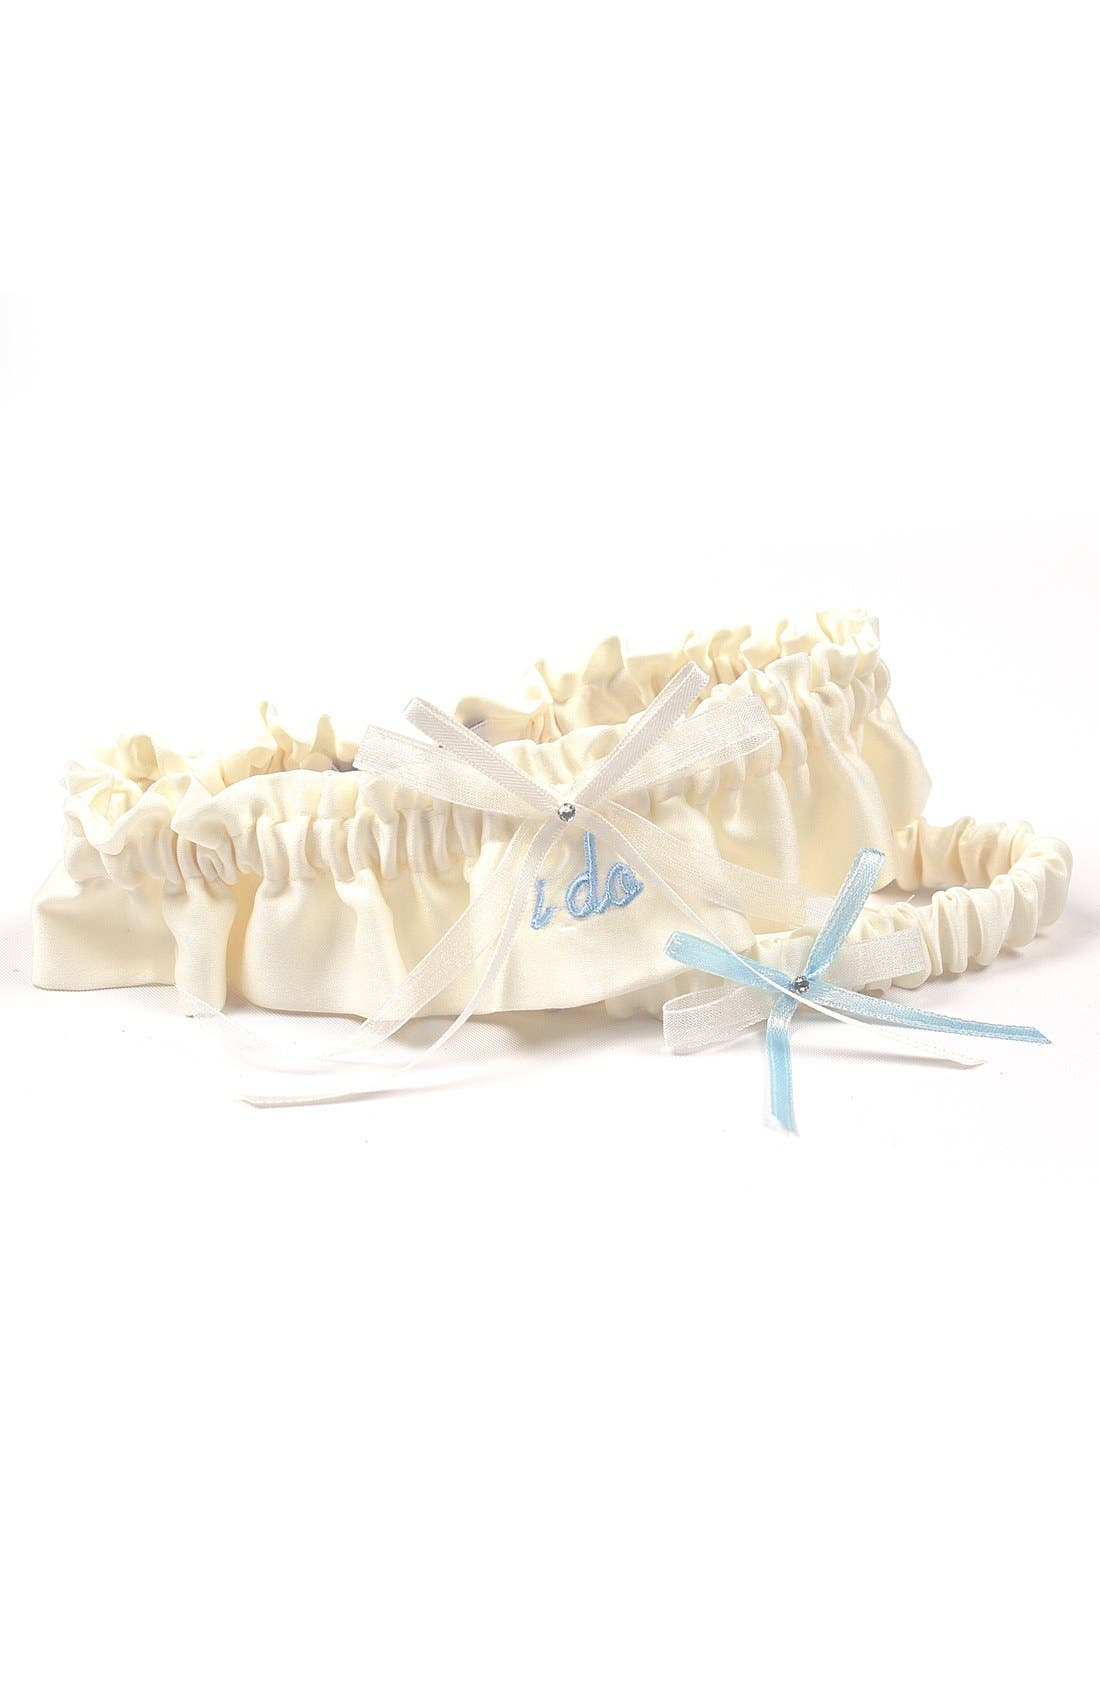 'I Do' Embroidered Garter,                             Main thumbnail 1, color,                             900